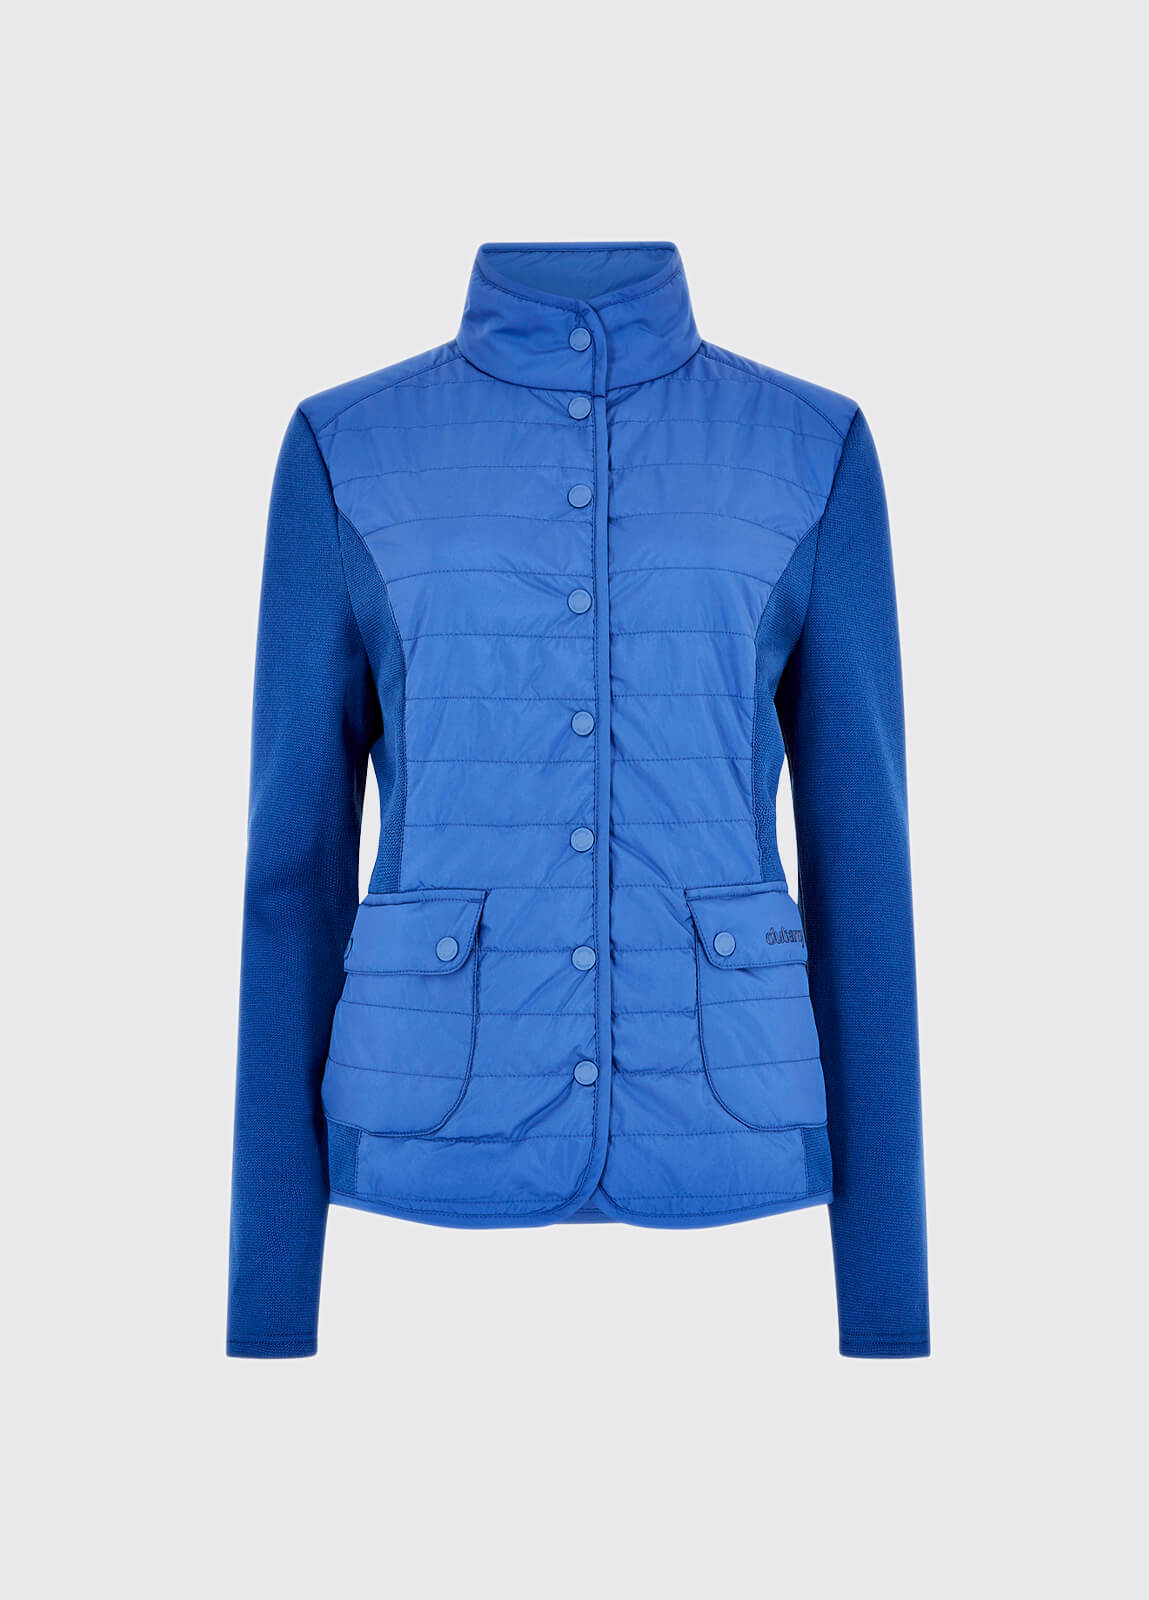 Terryglass jacket - Royal Blue